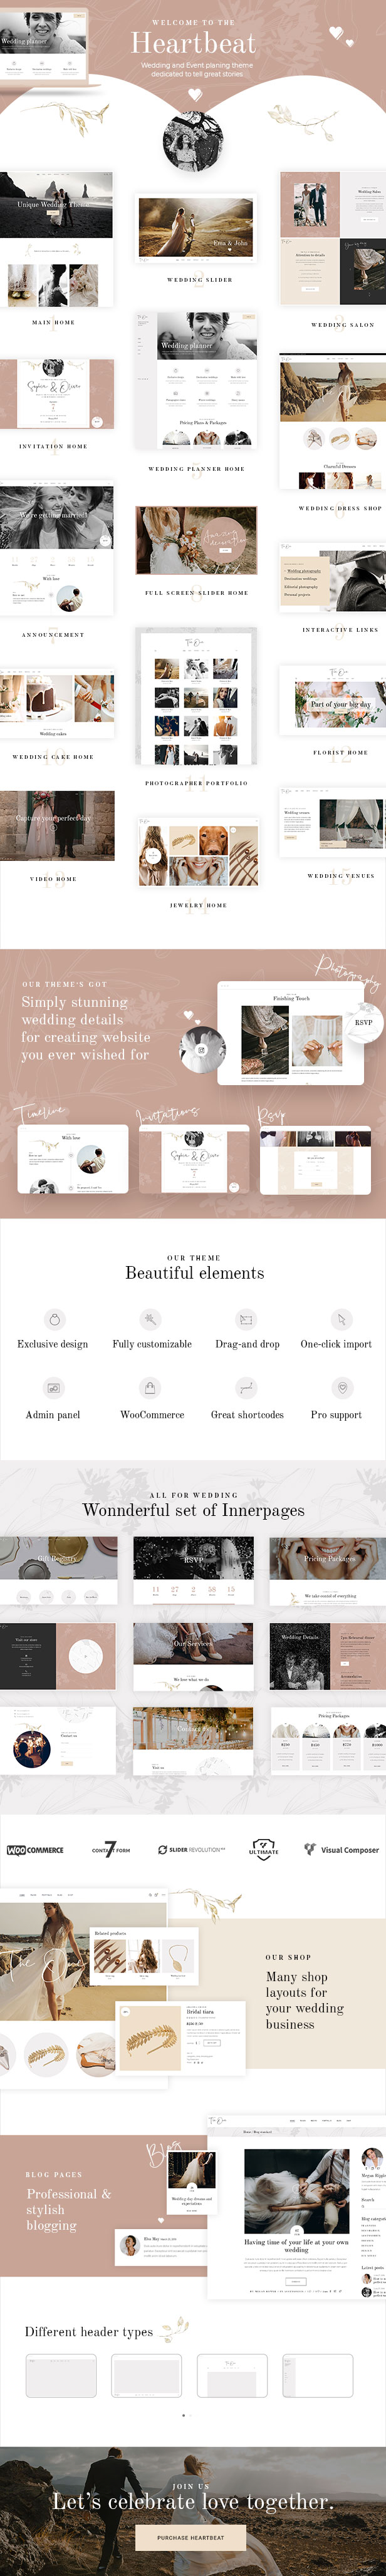 Heartbeat - Wedding and Event Planner WordPress Theme - 1